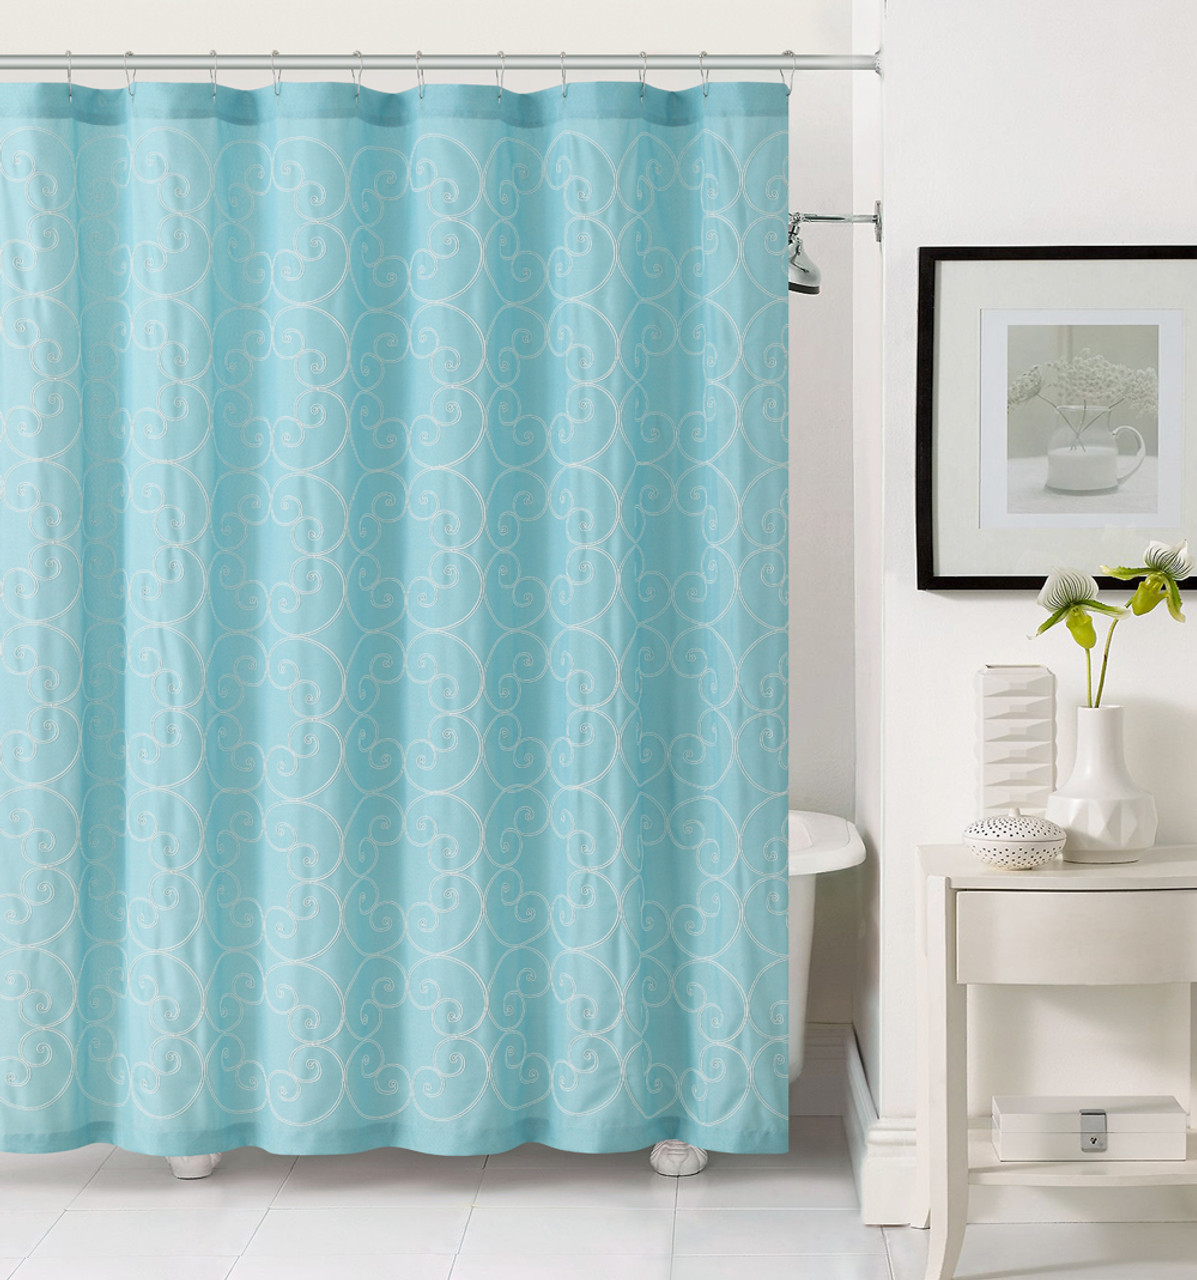 light aqua blue fabric shower curtain with white embroidered swirl circle design